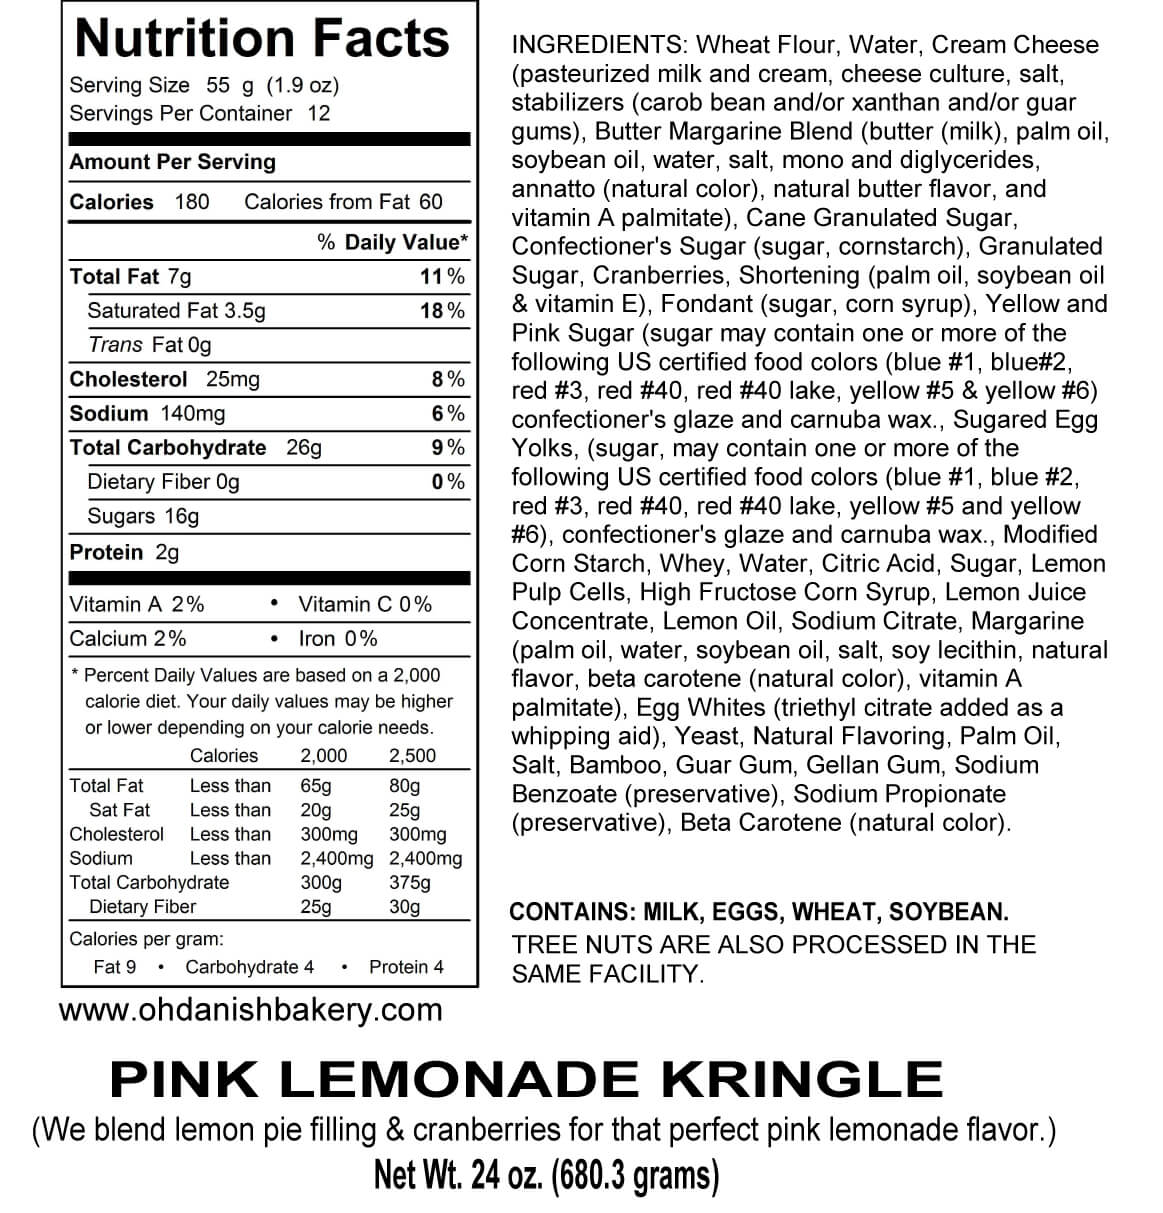 Nutritional Label for Pink Lemonade Kringle